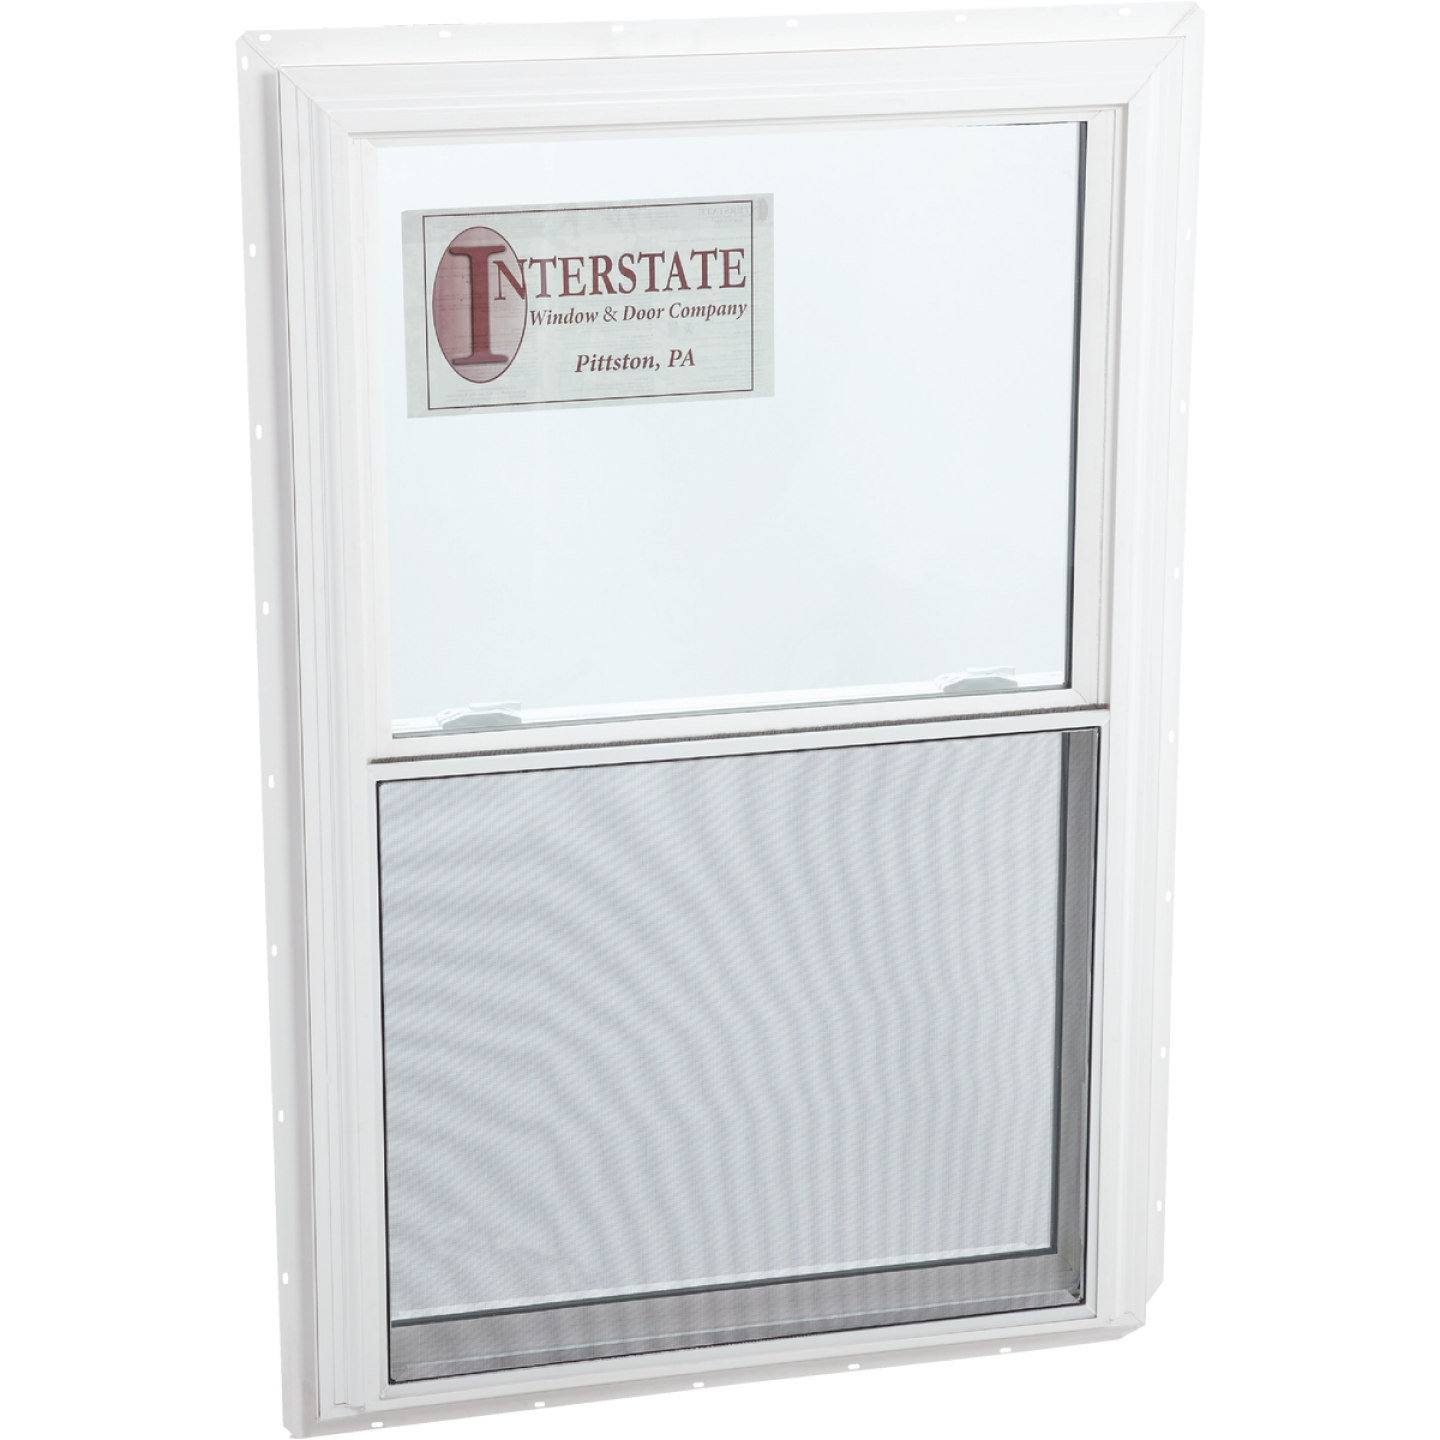 Interstate Model 5100 36 In. W. x 36 In. H. White Vinyl Double Hung Window Image 1